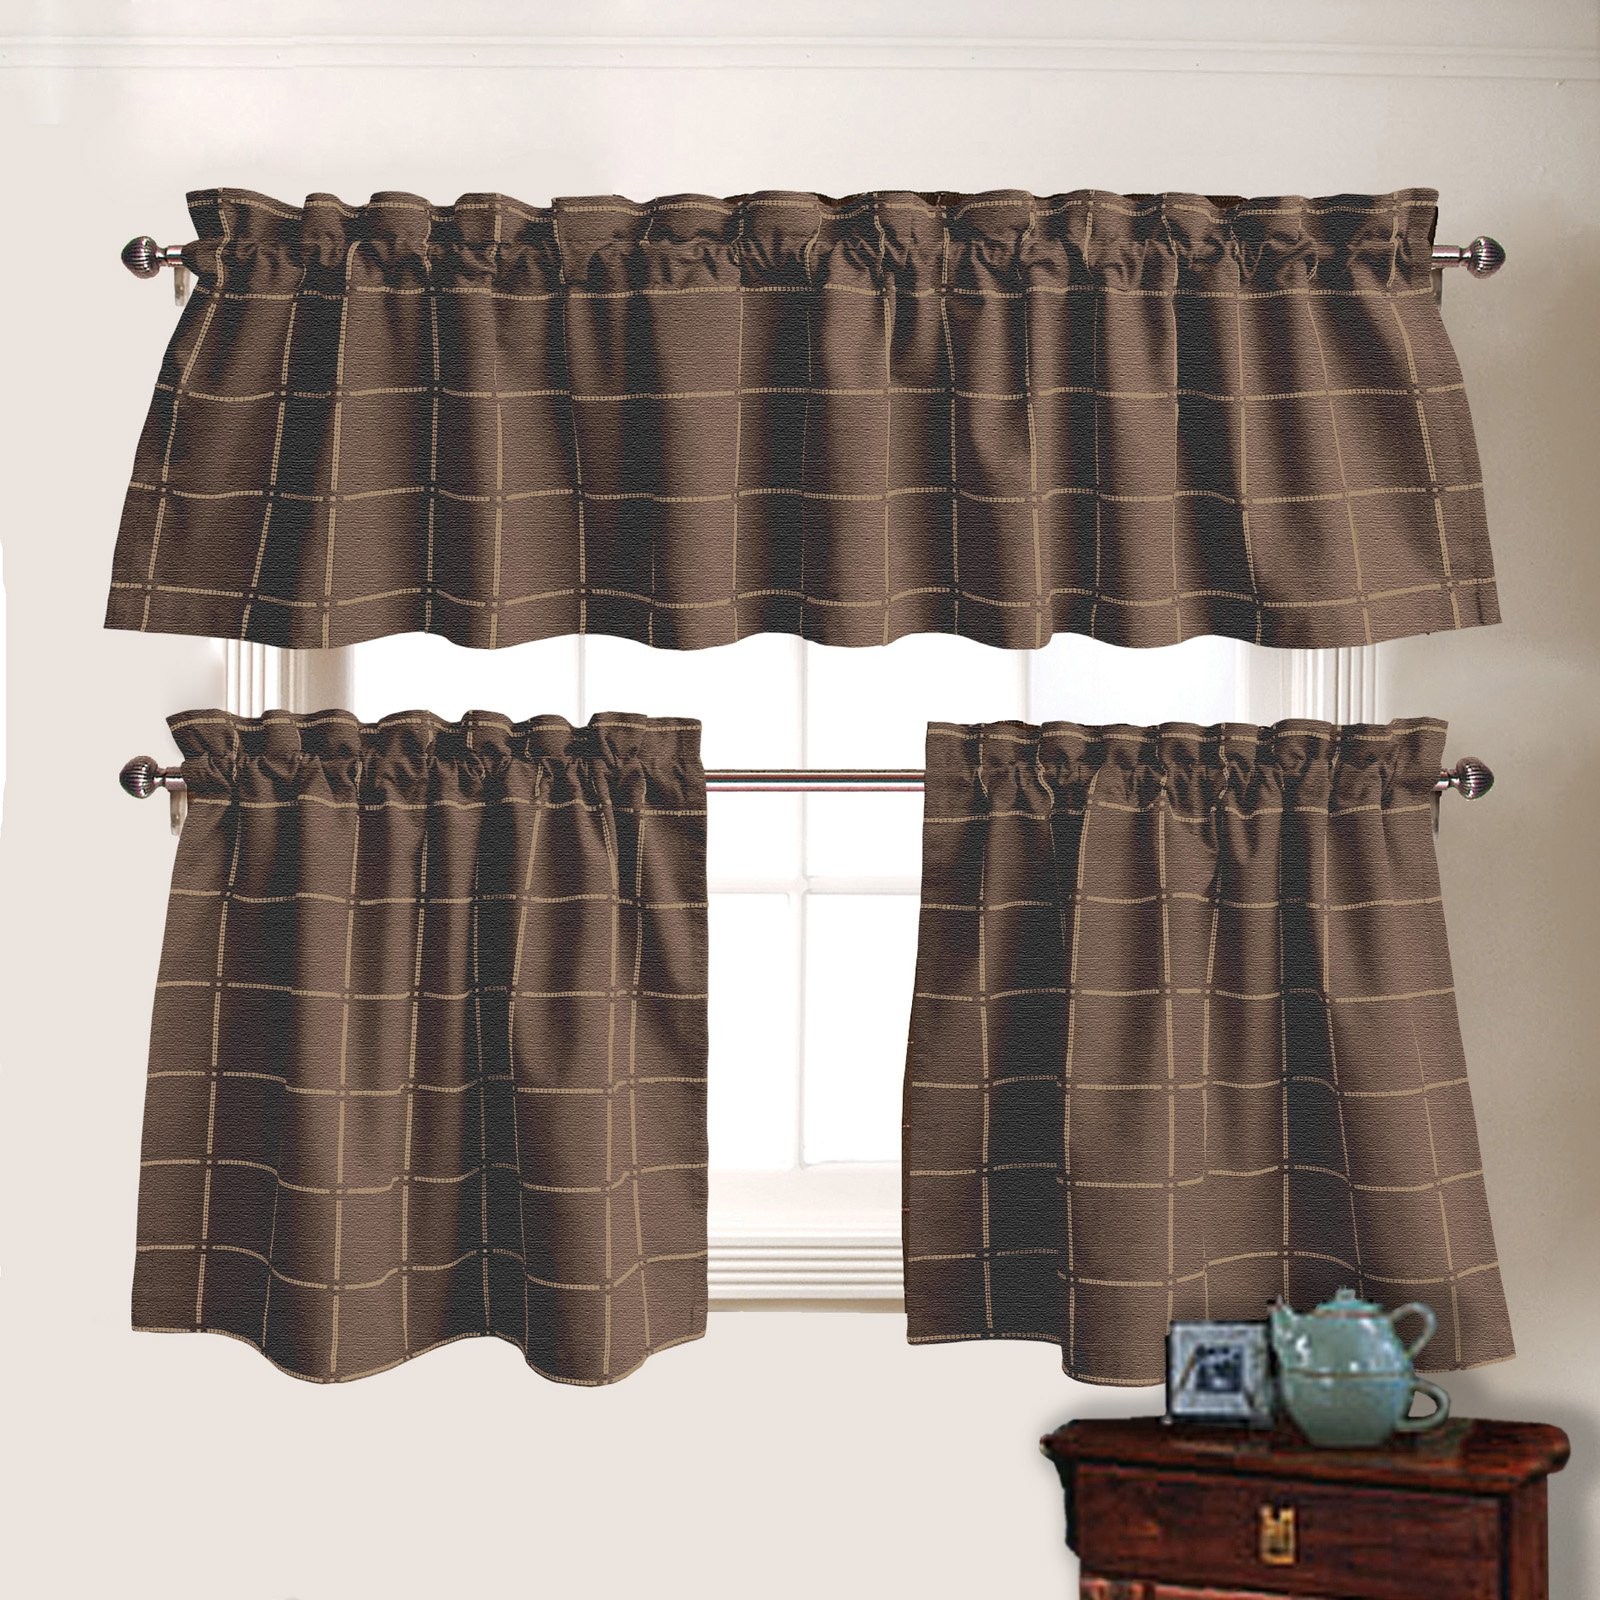 Park B. Smith Durham Square Chambray Valance